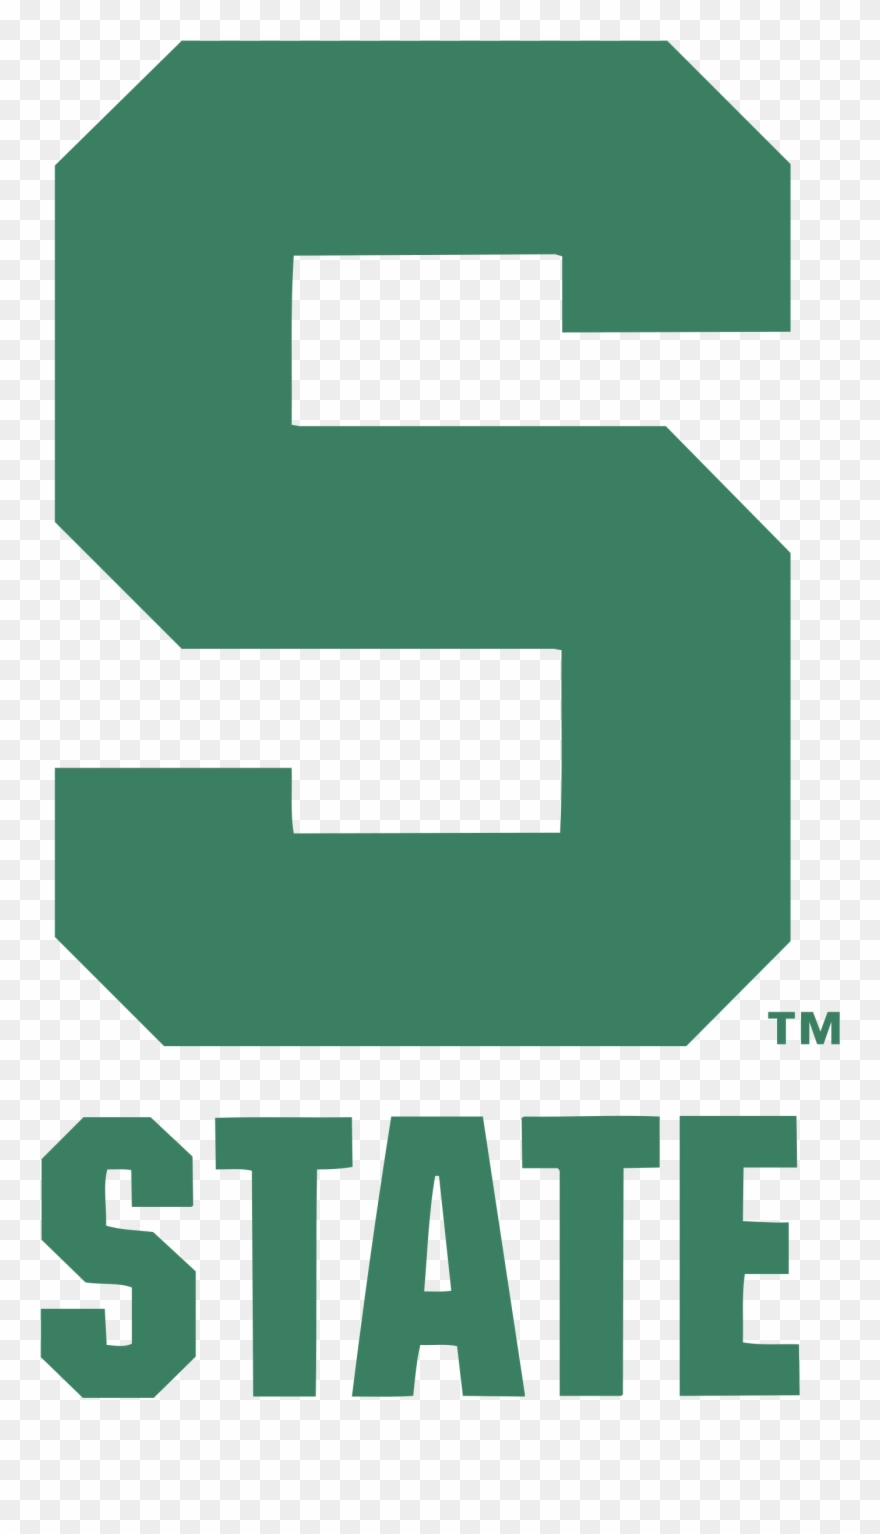 Michigan State Spartans Logo Png Transparent.